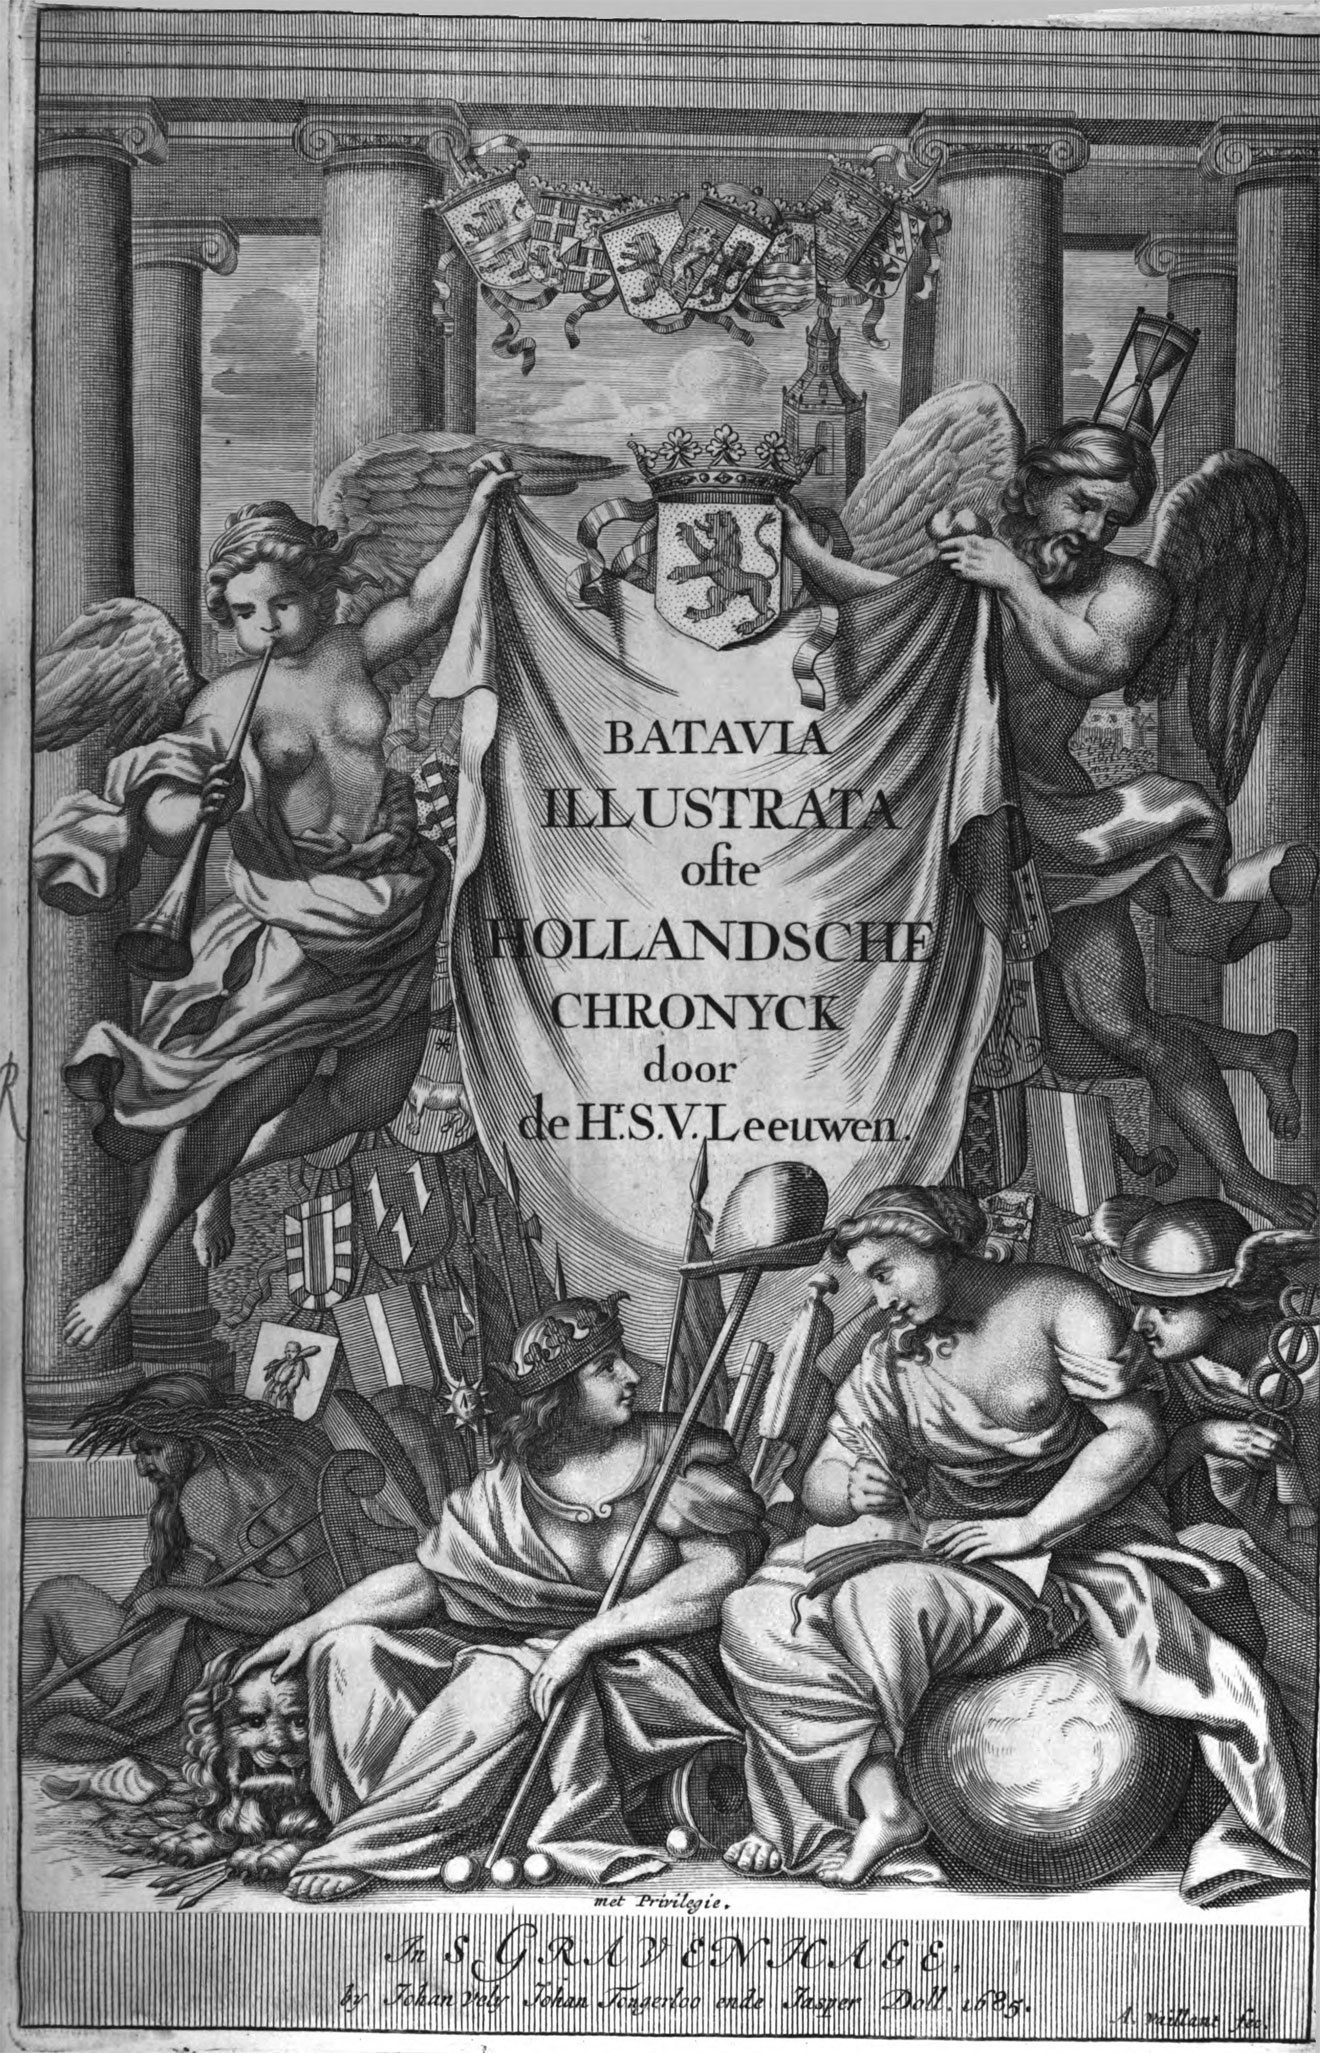 Batavia-Illustrata-titlepage-1685